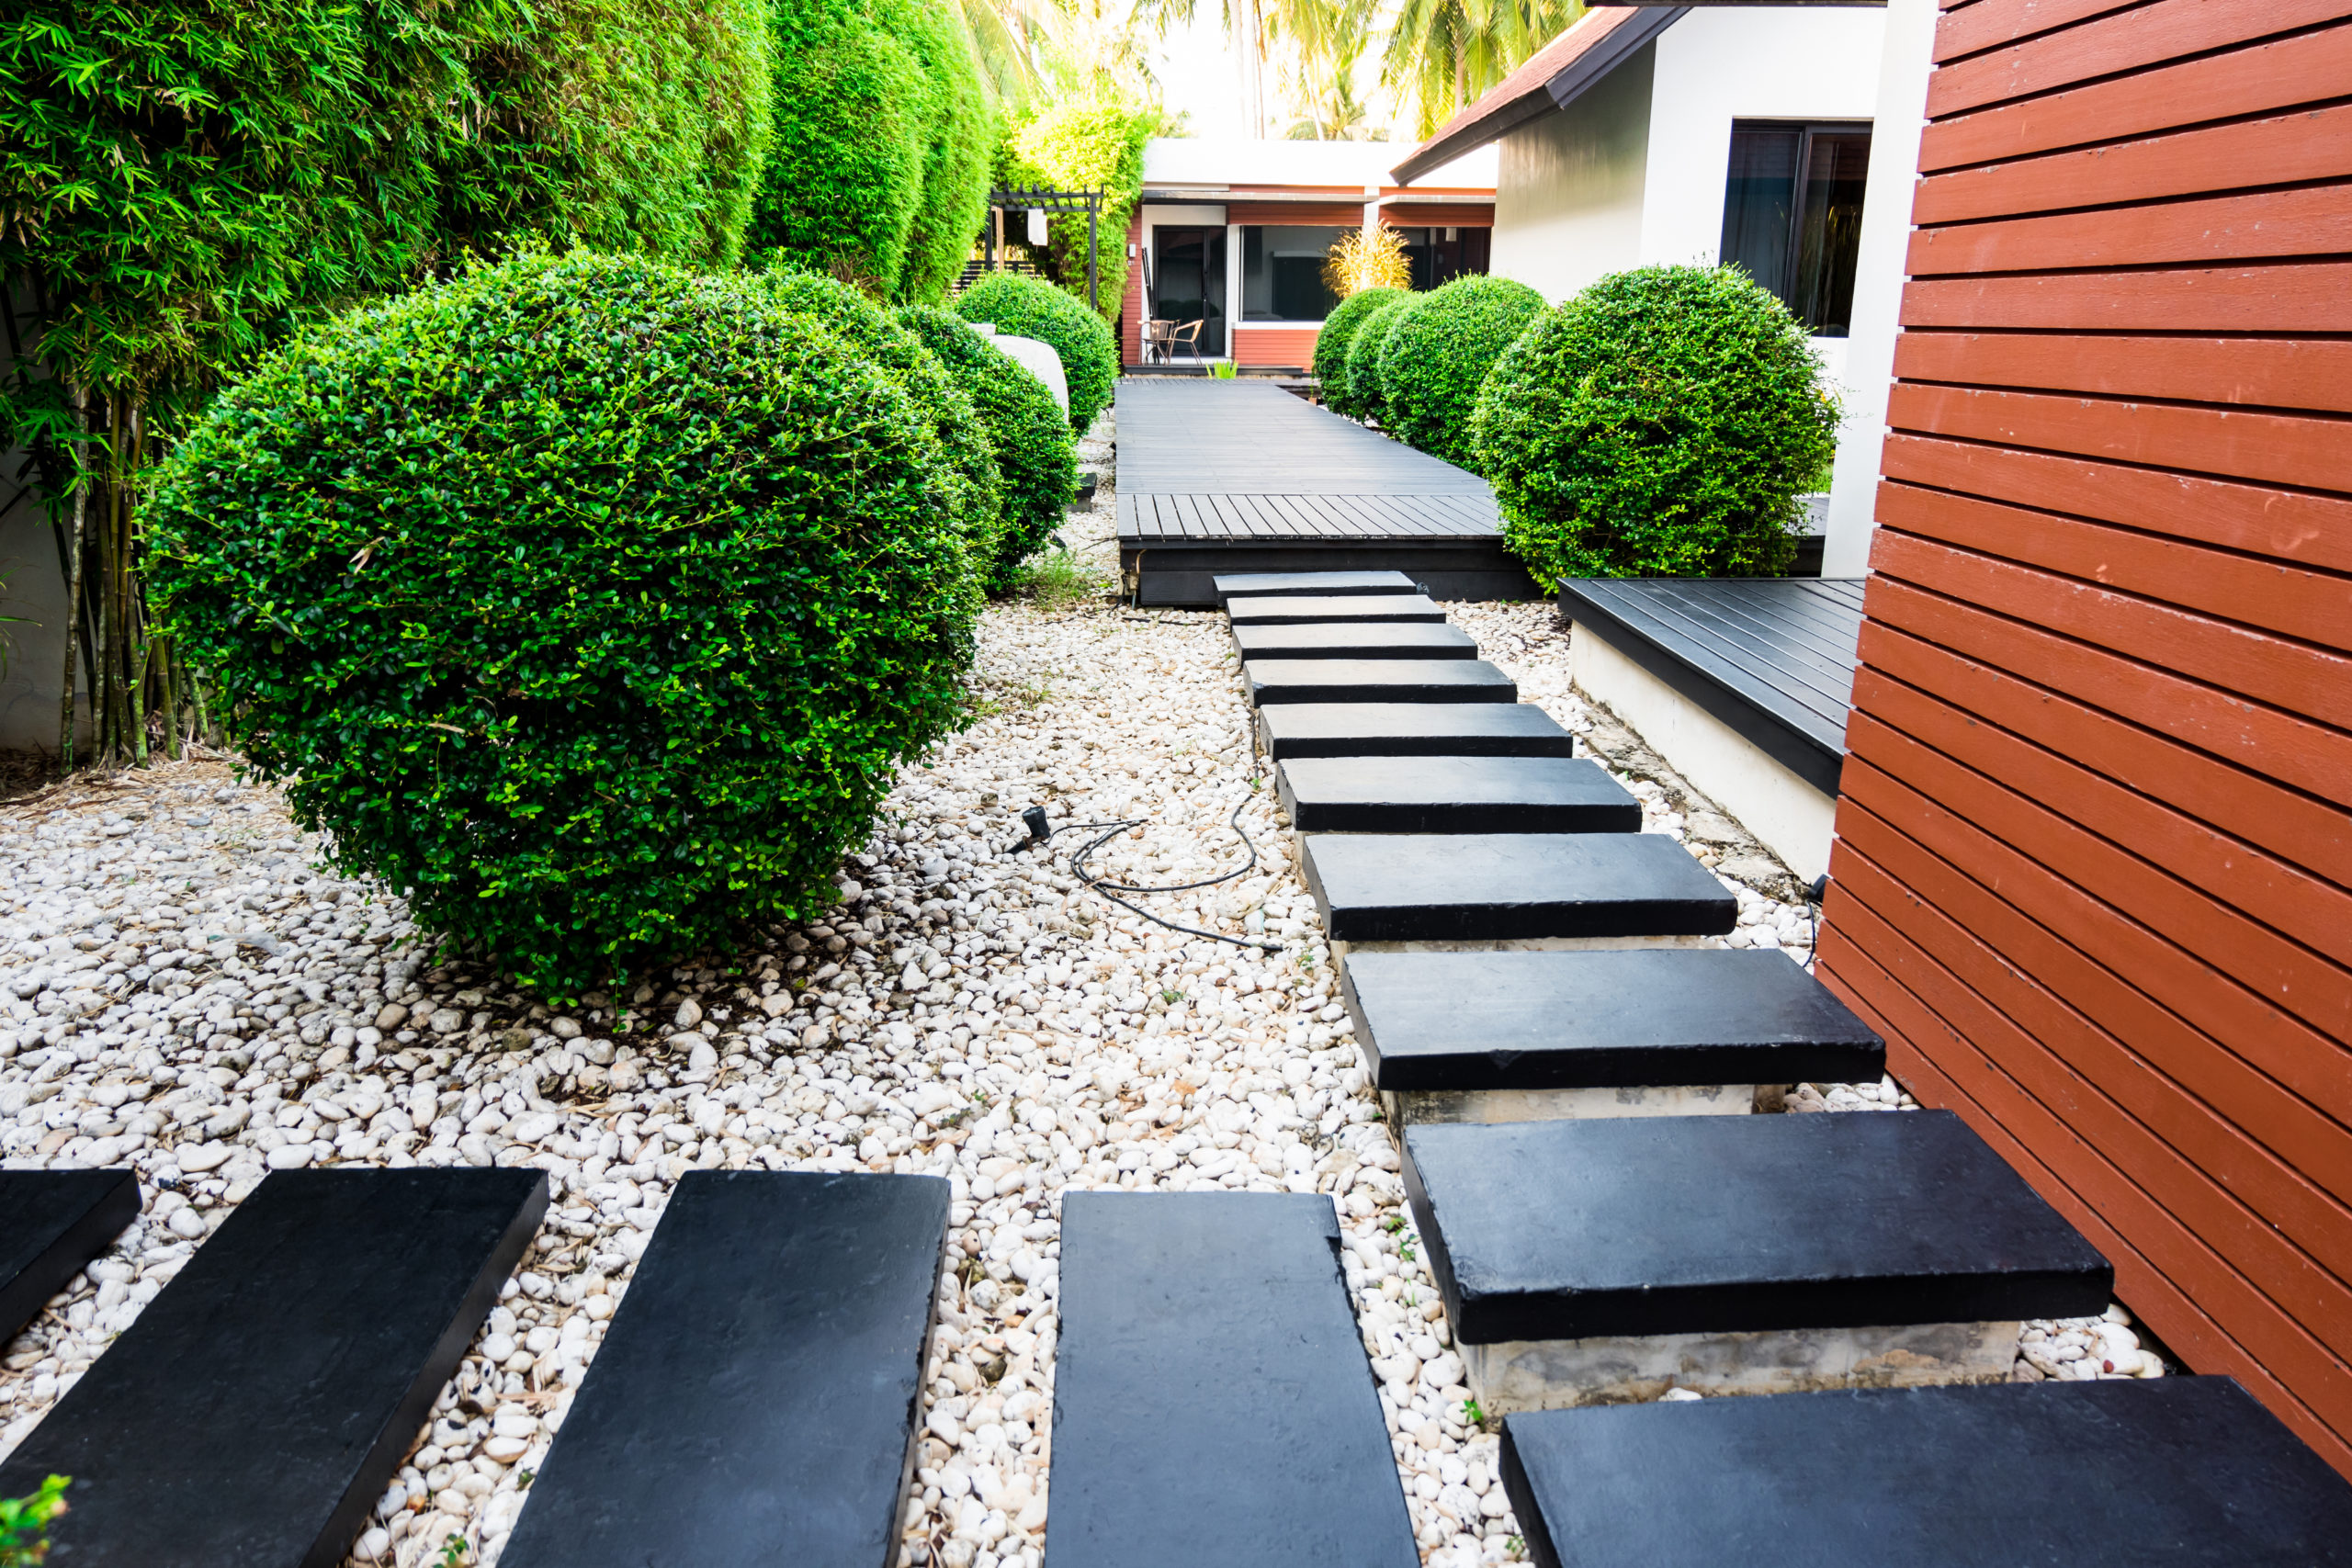 Decorative Rocks for Landscaping: 3 Backyard Design Ideas ... on Black And White Patio Ideas id=22305